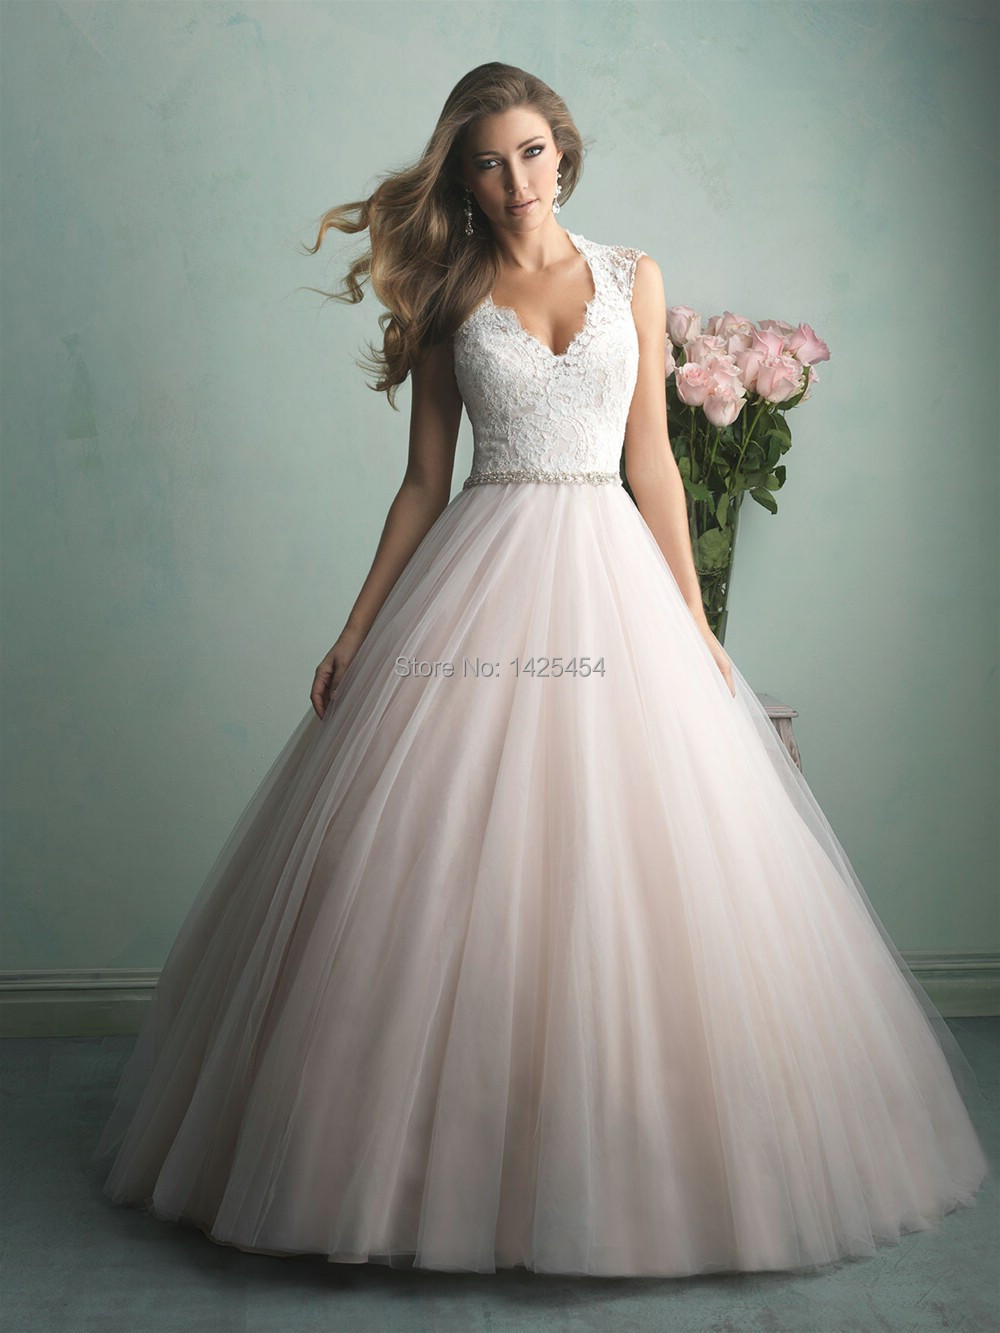 designer lace ball gown wedding dress « Bella Forte Glass Studio